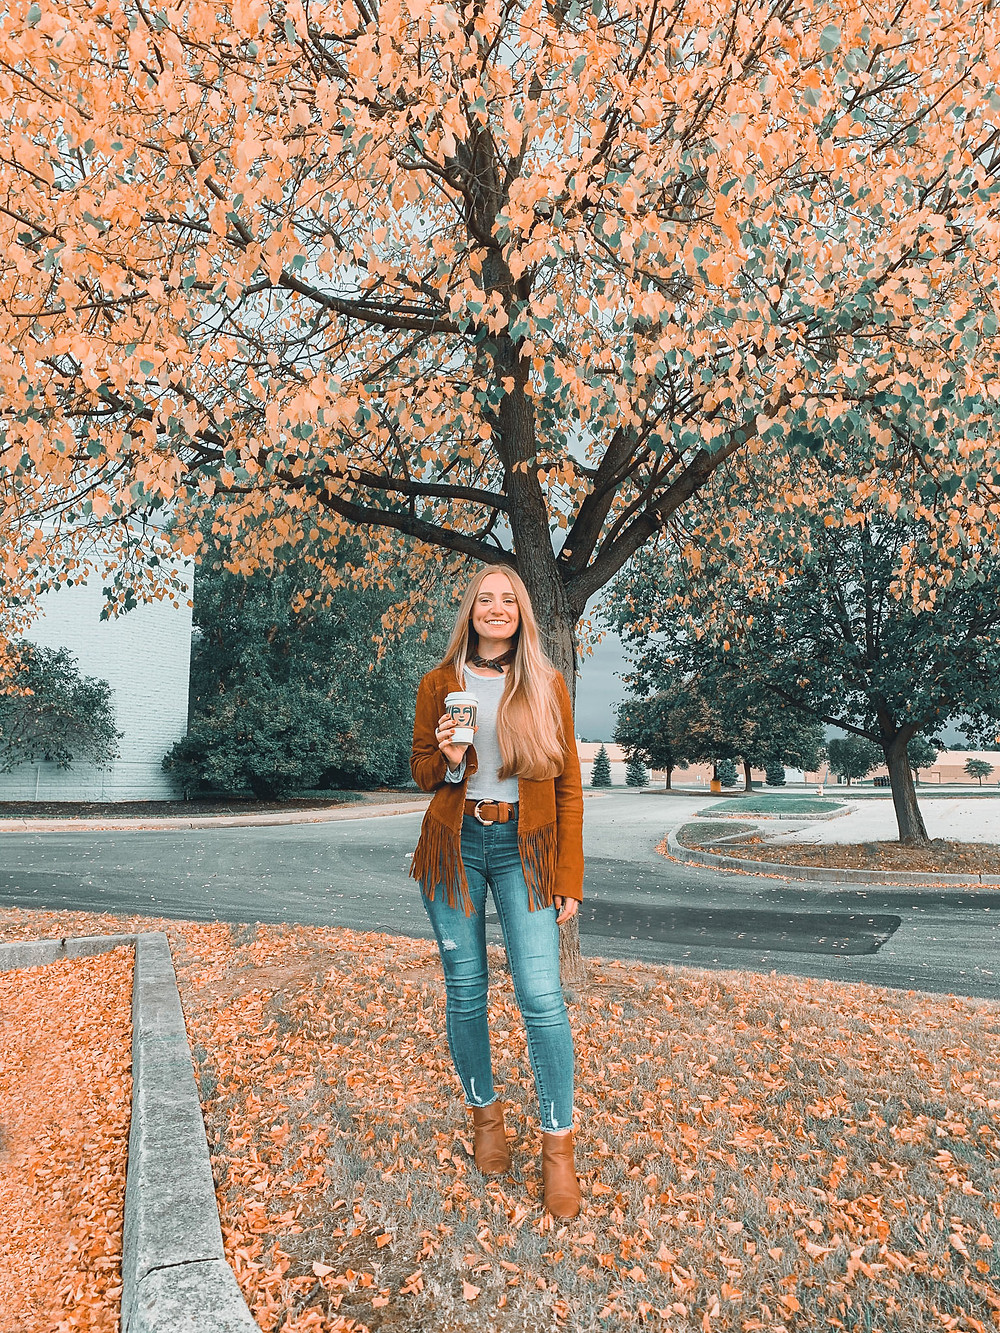 Blonde hair, fall, fall leaves, changing leaves, jeans, fringe suede jacket, scarf, parking lot, fall scene, boots, Starbucks, Starbucks Coffee